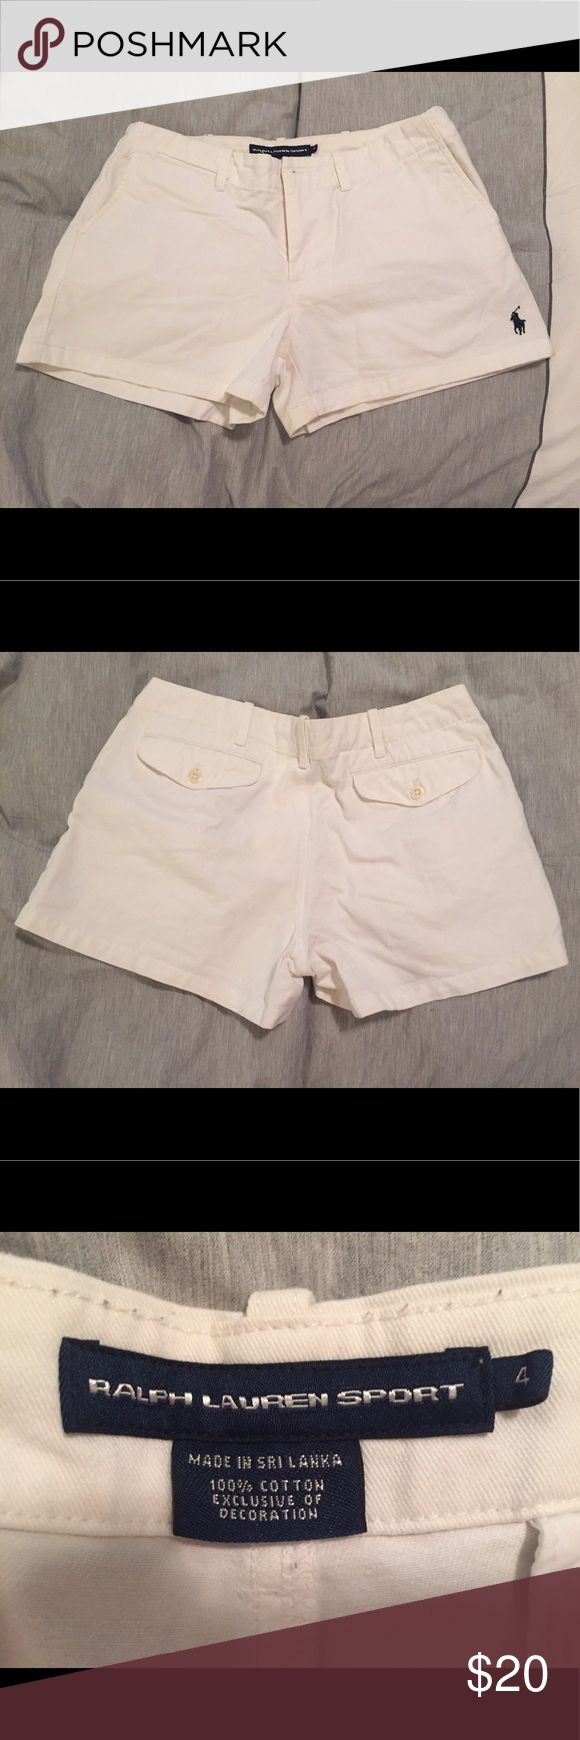 Polo Ralph Lauren white sport shorts size 4 An almost brand new pair of Polo Ralph Lauren white sport shorts. Size 4. Only worn twice and in excellent condition! Really sad I can't wear these anymore! Has the navy polo Ralph Lauren logo on bottom left shirt corner. Polo by Ralph Lauren Shorts